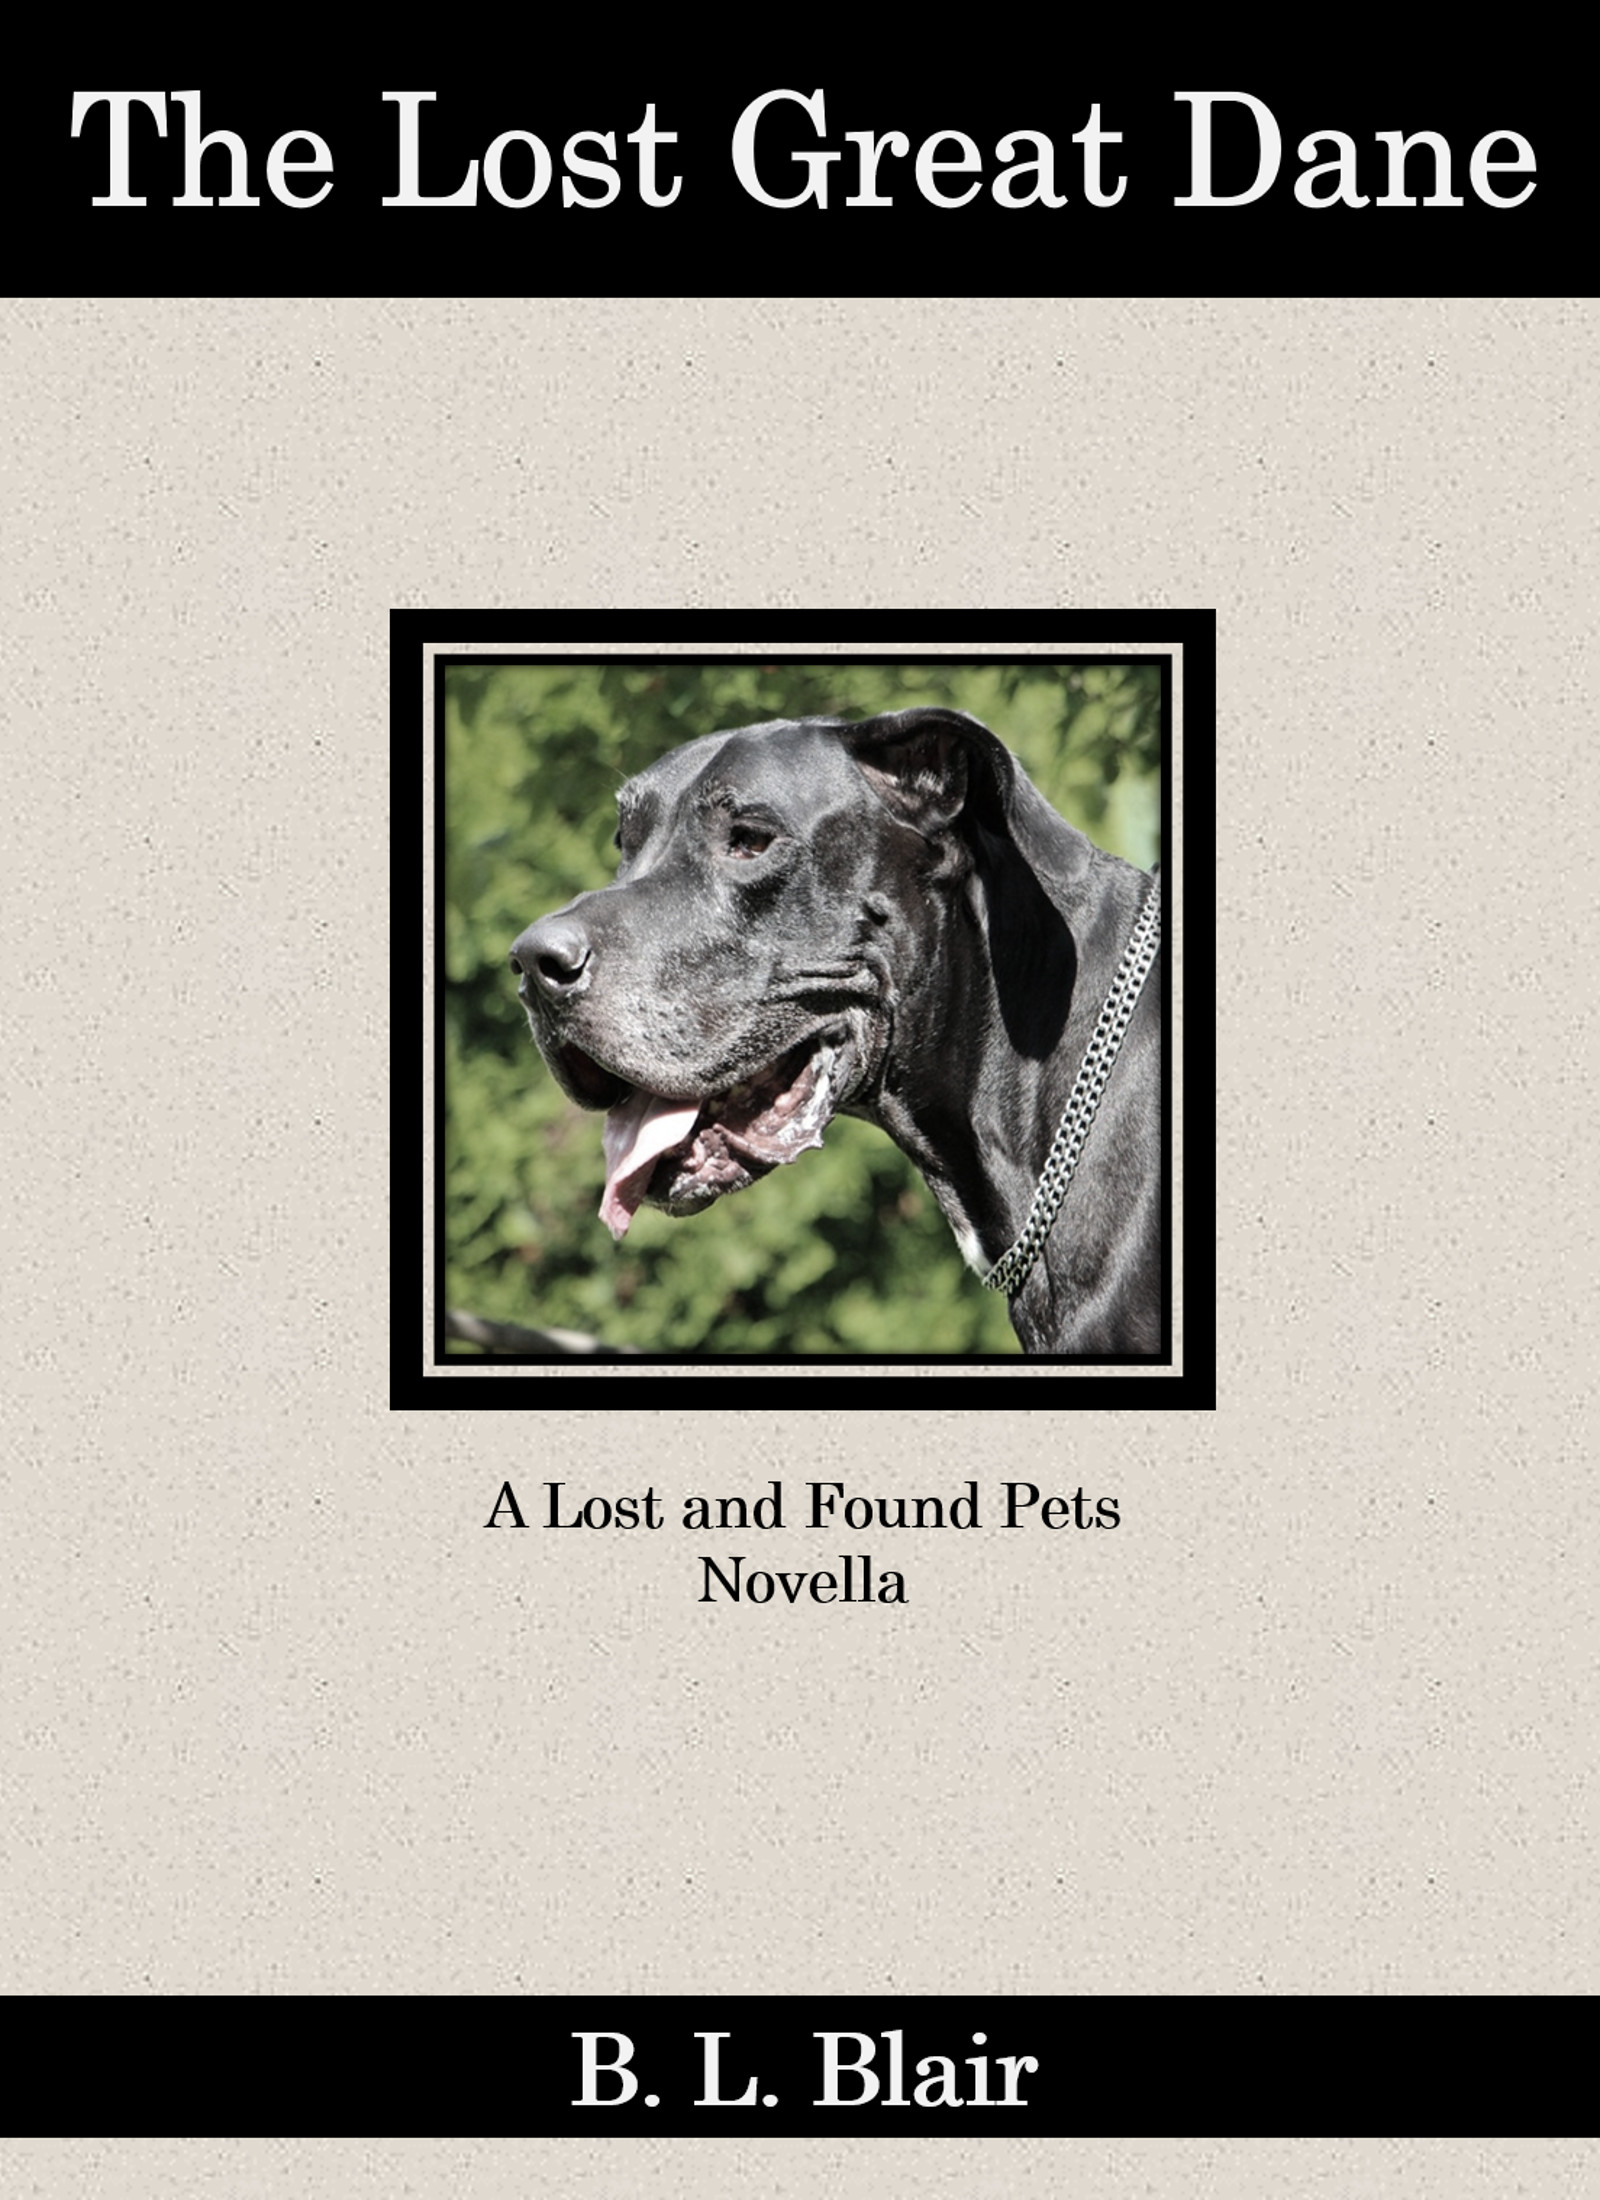 The Lost Great Dane